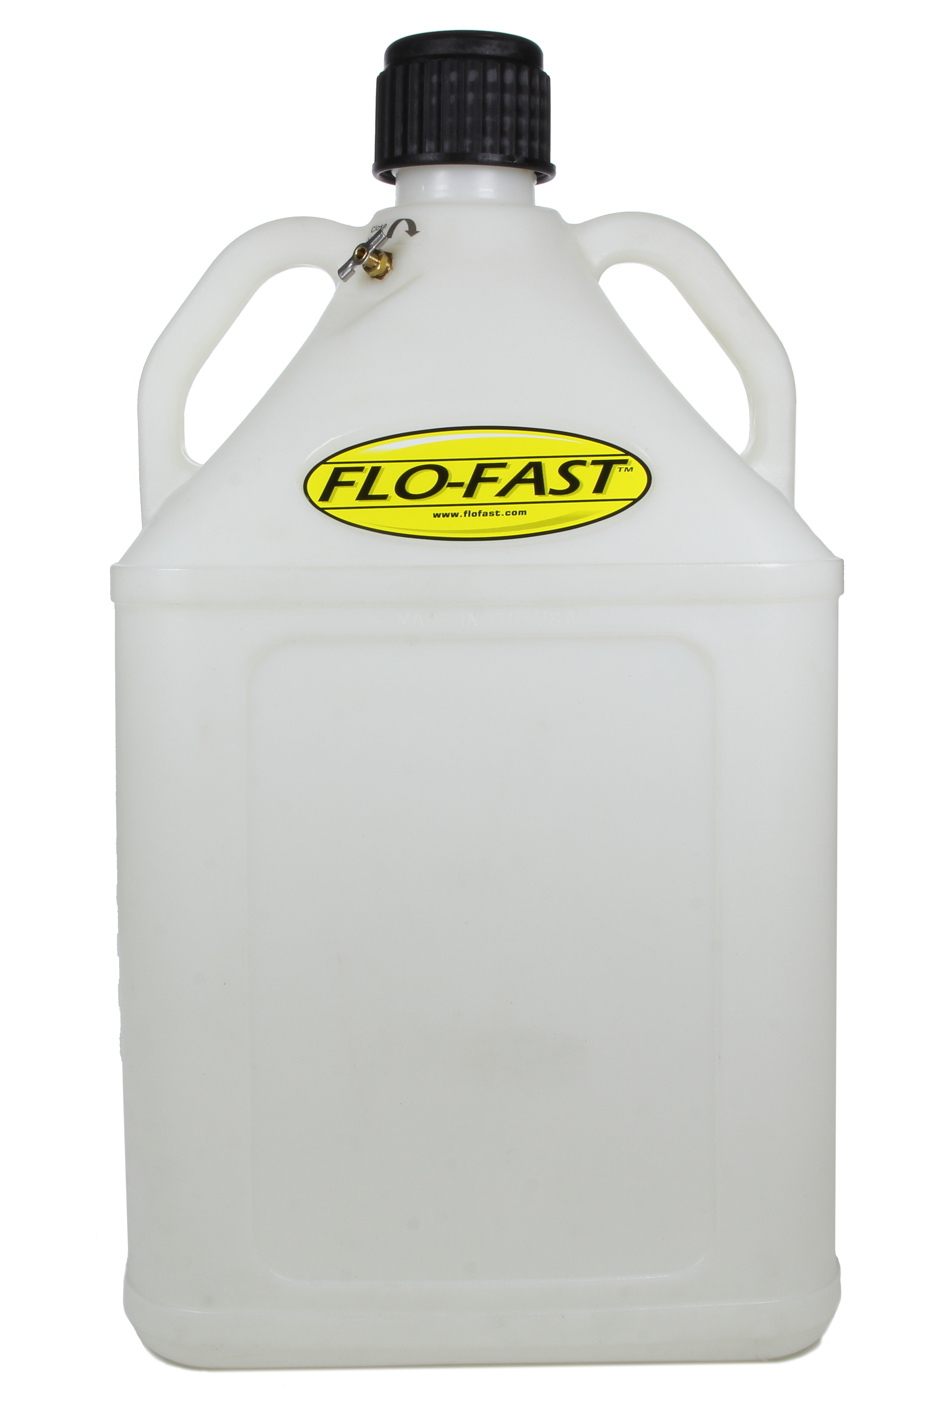 Flo-Fast 15503-N Utility Jug, 15 Gal, 15 x 15 x 28 in Tall, O-Ring Seal Cap, Bolt-In Vent, Square, Plastic, Natural, Each